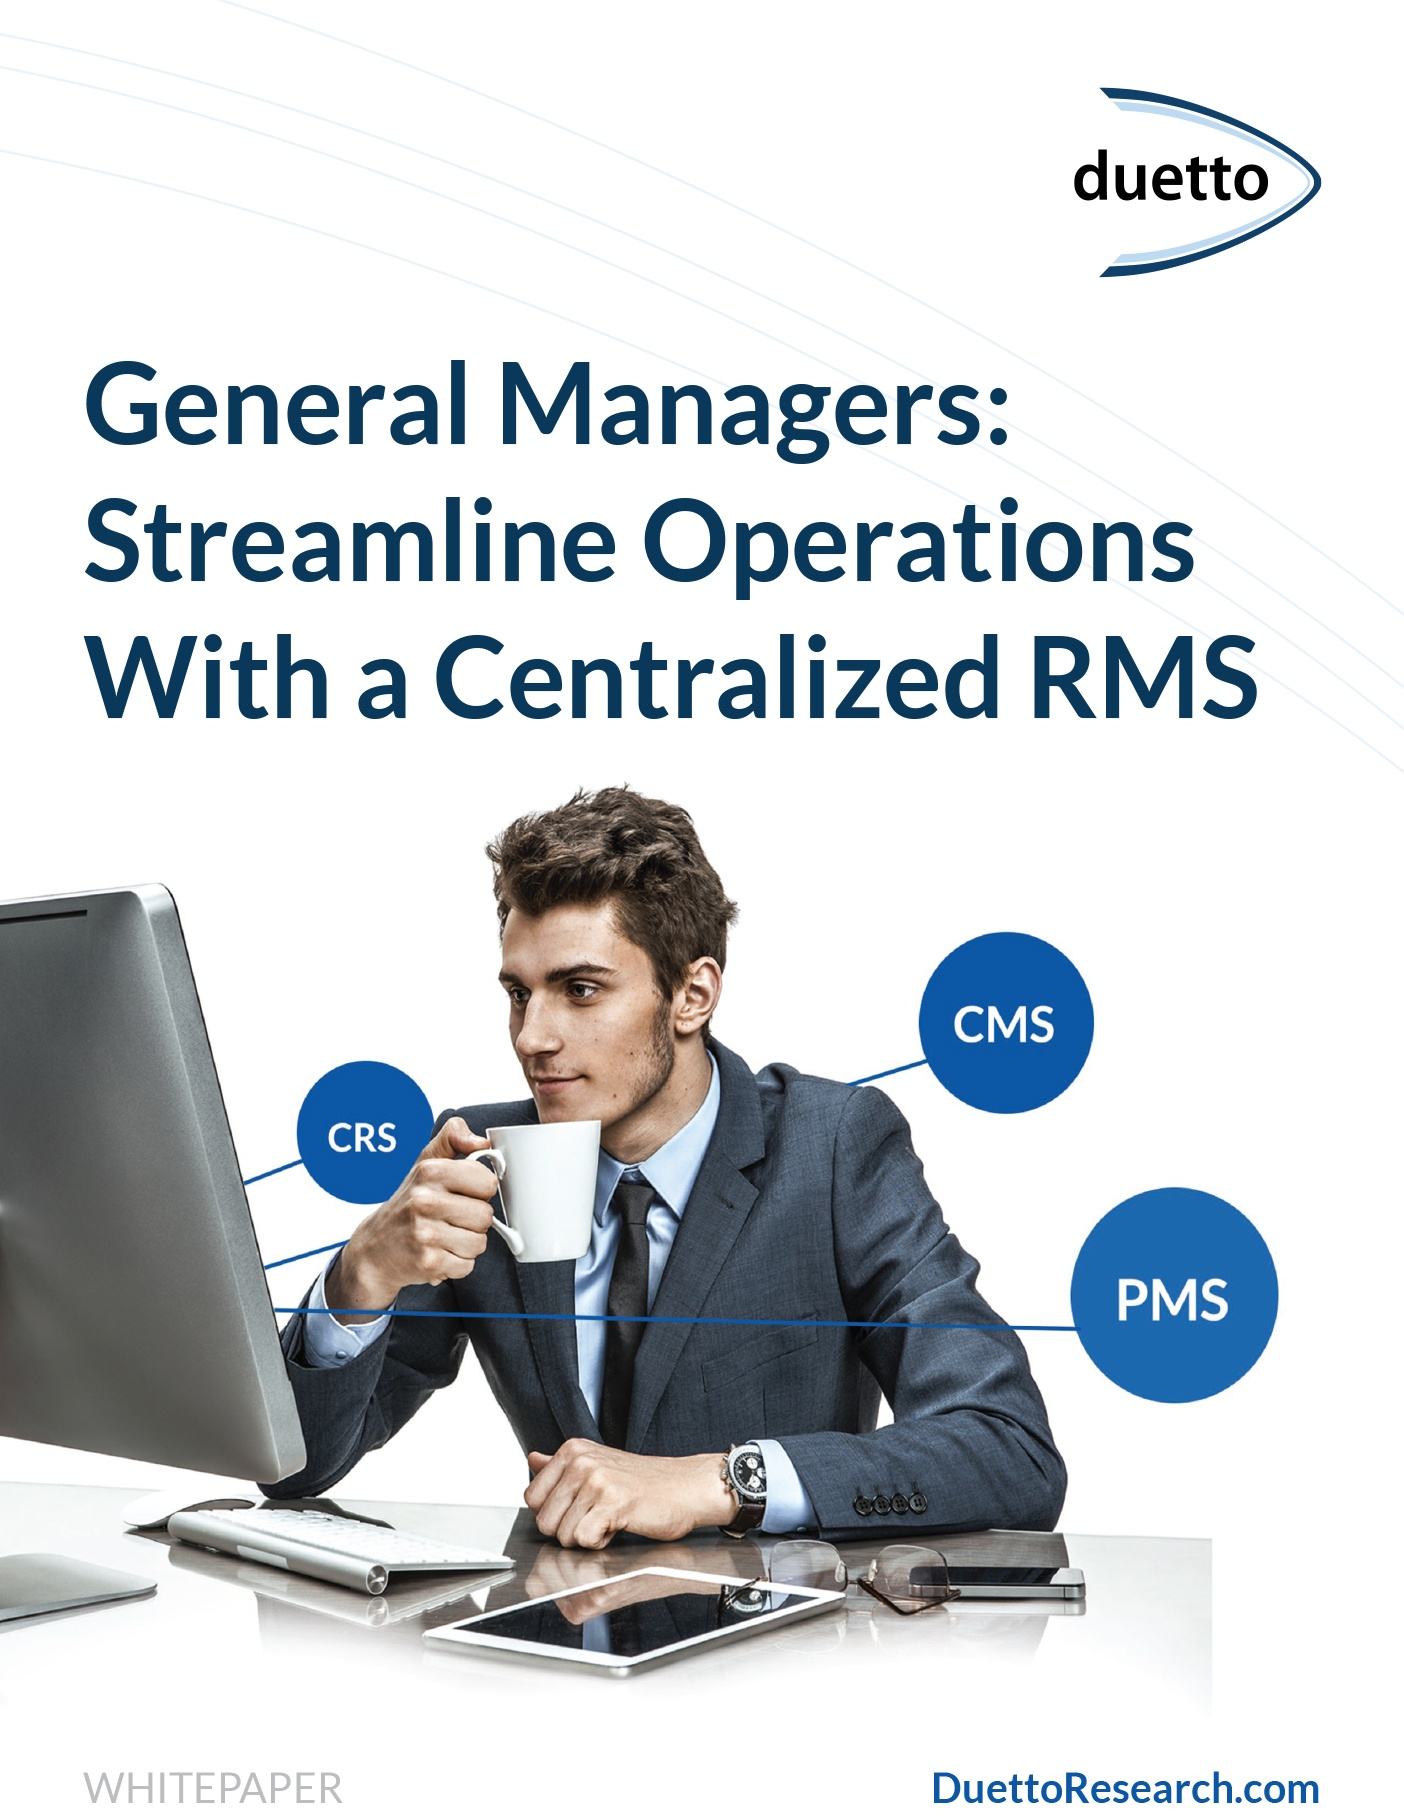 1_General-Managers-Streamline-Operations-With-a-Centralized-RMS.jpg